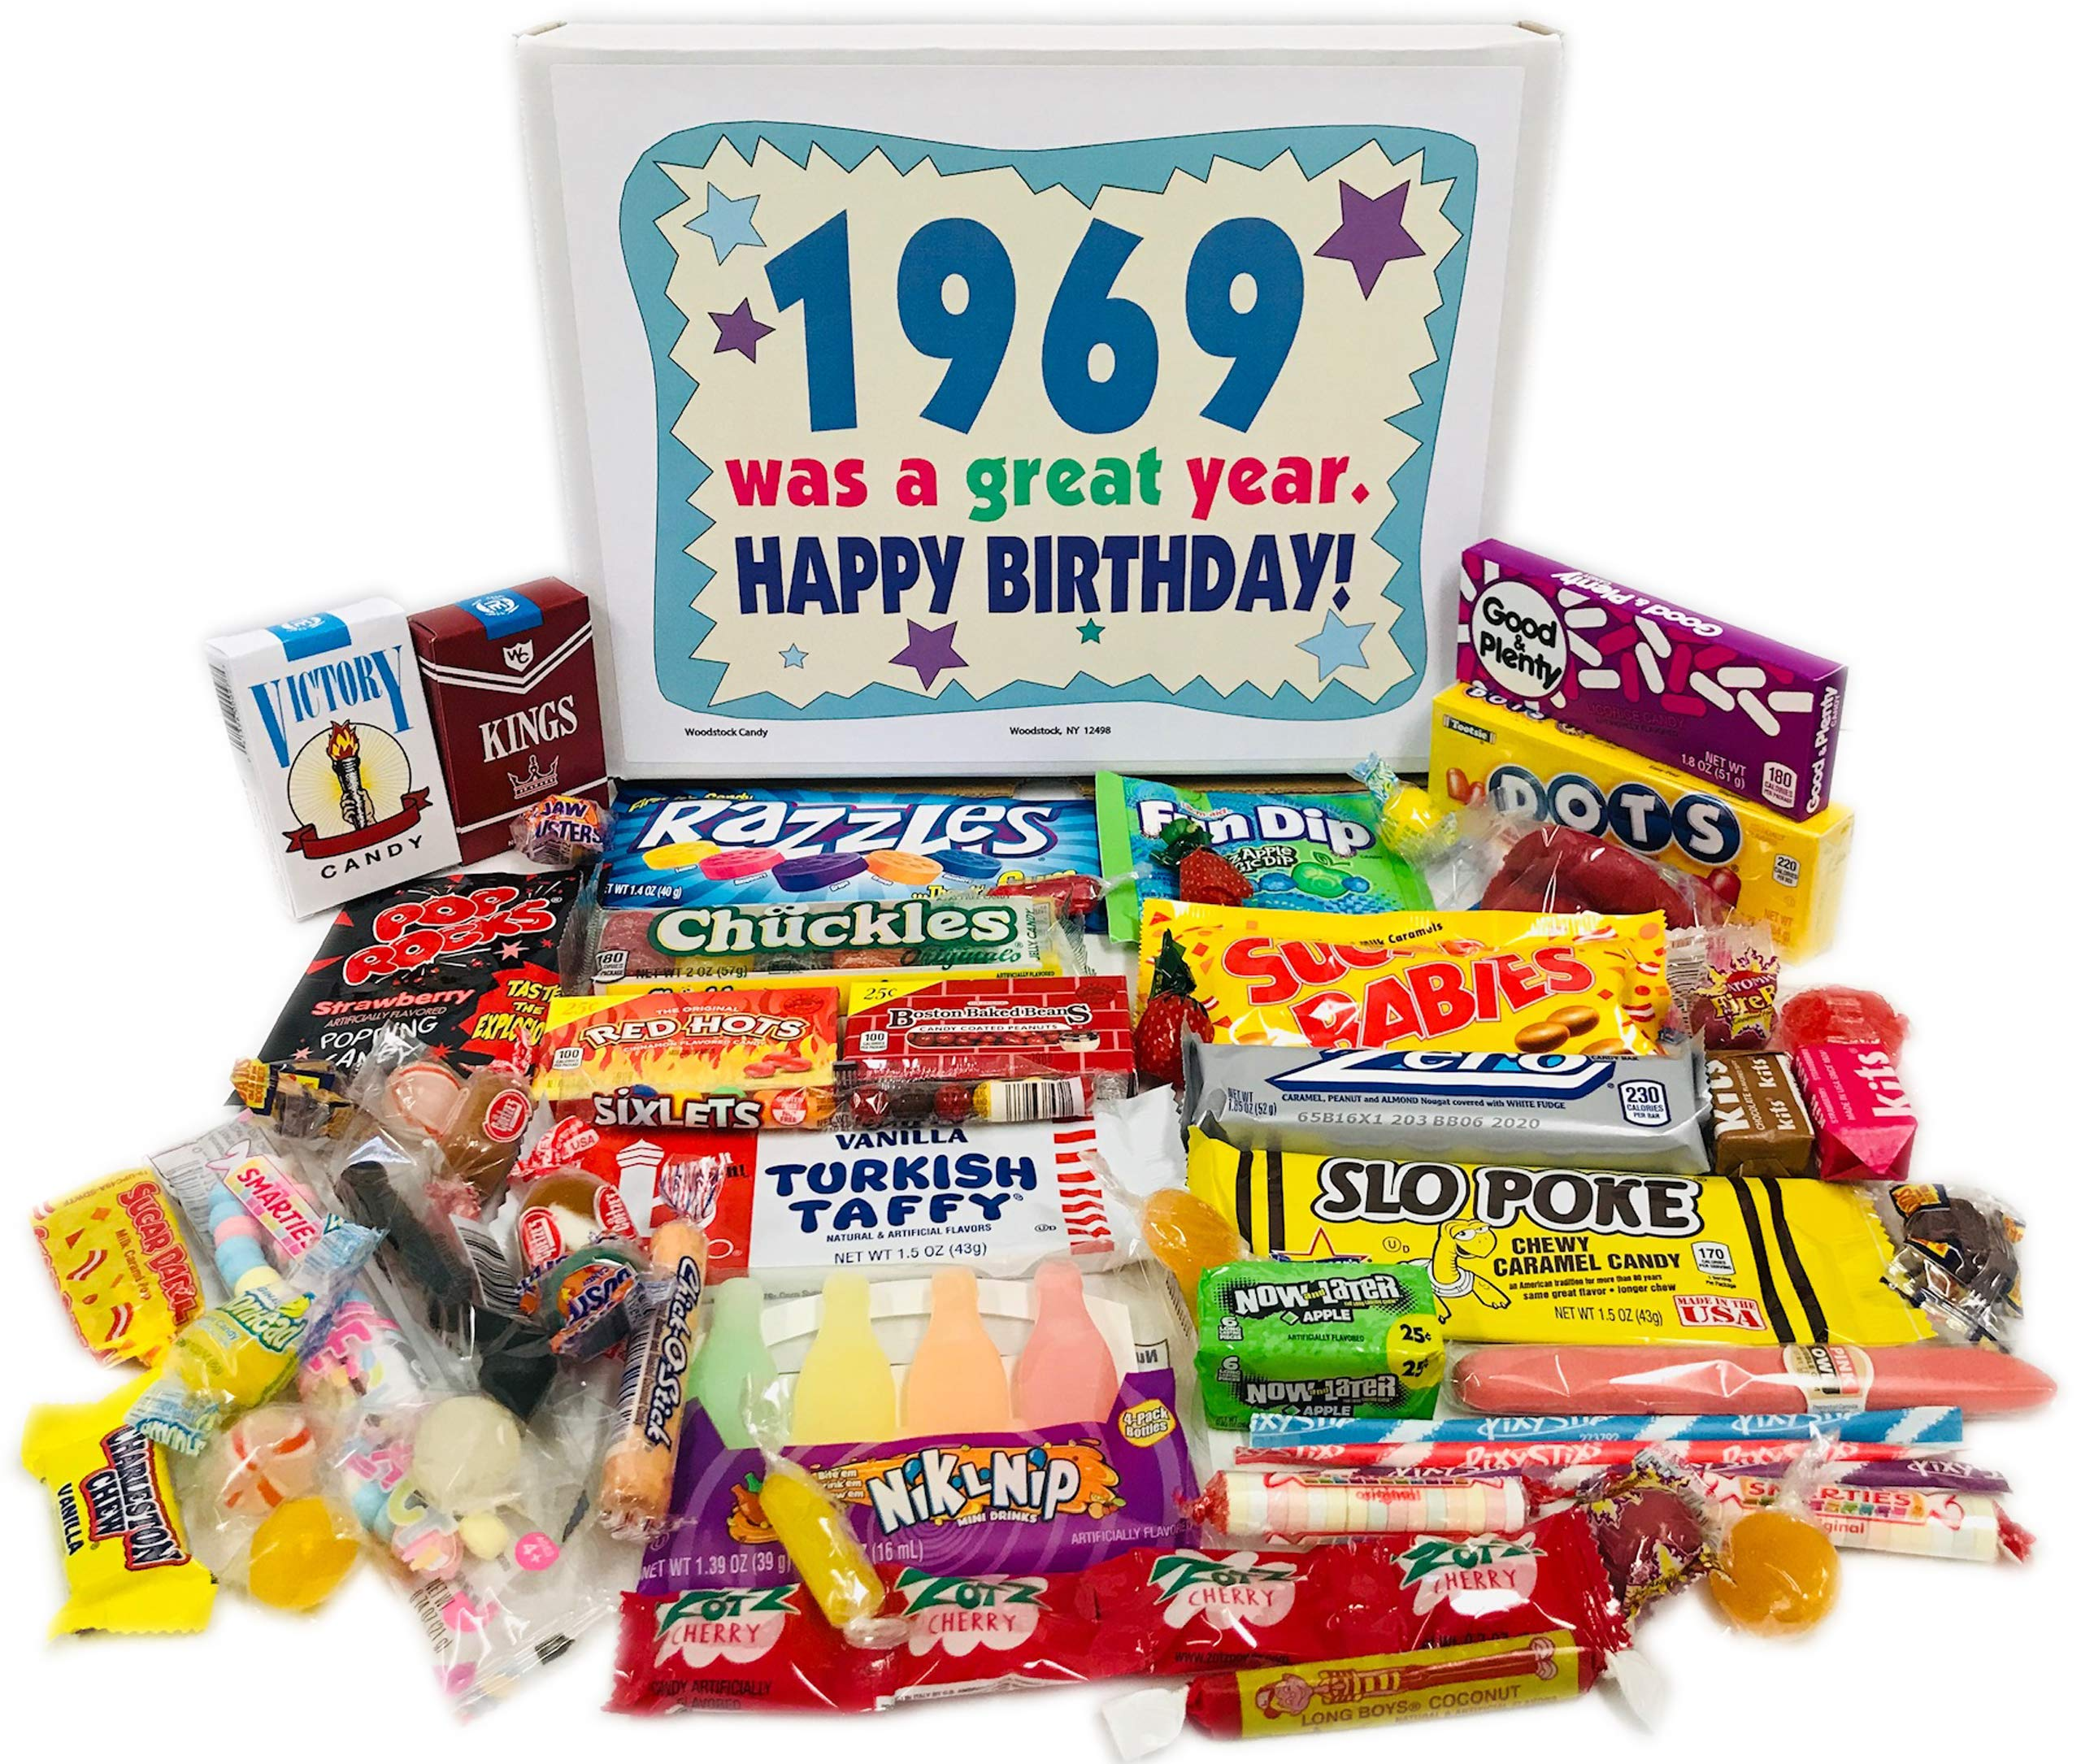 Woodstock Candy ~ 50th Birthday Gift Box Vintage Candy Assortment from Childhood for 50 Year Old Man or Woman Born 1969